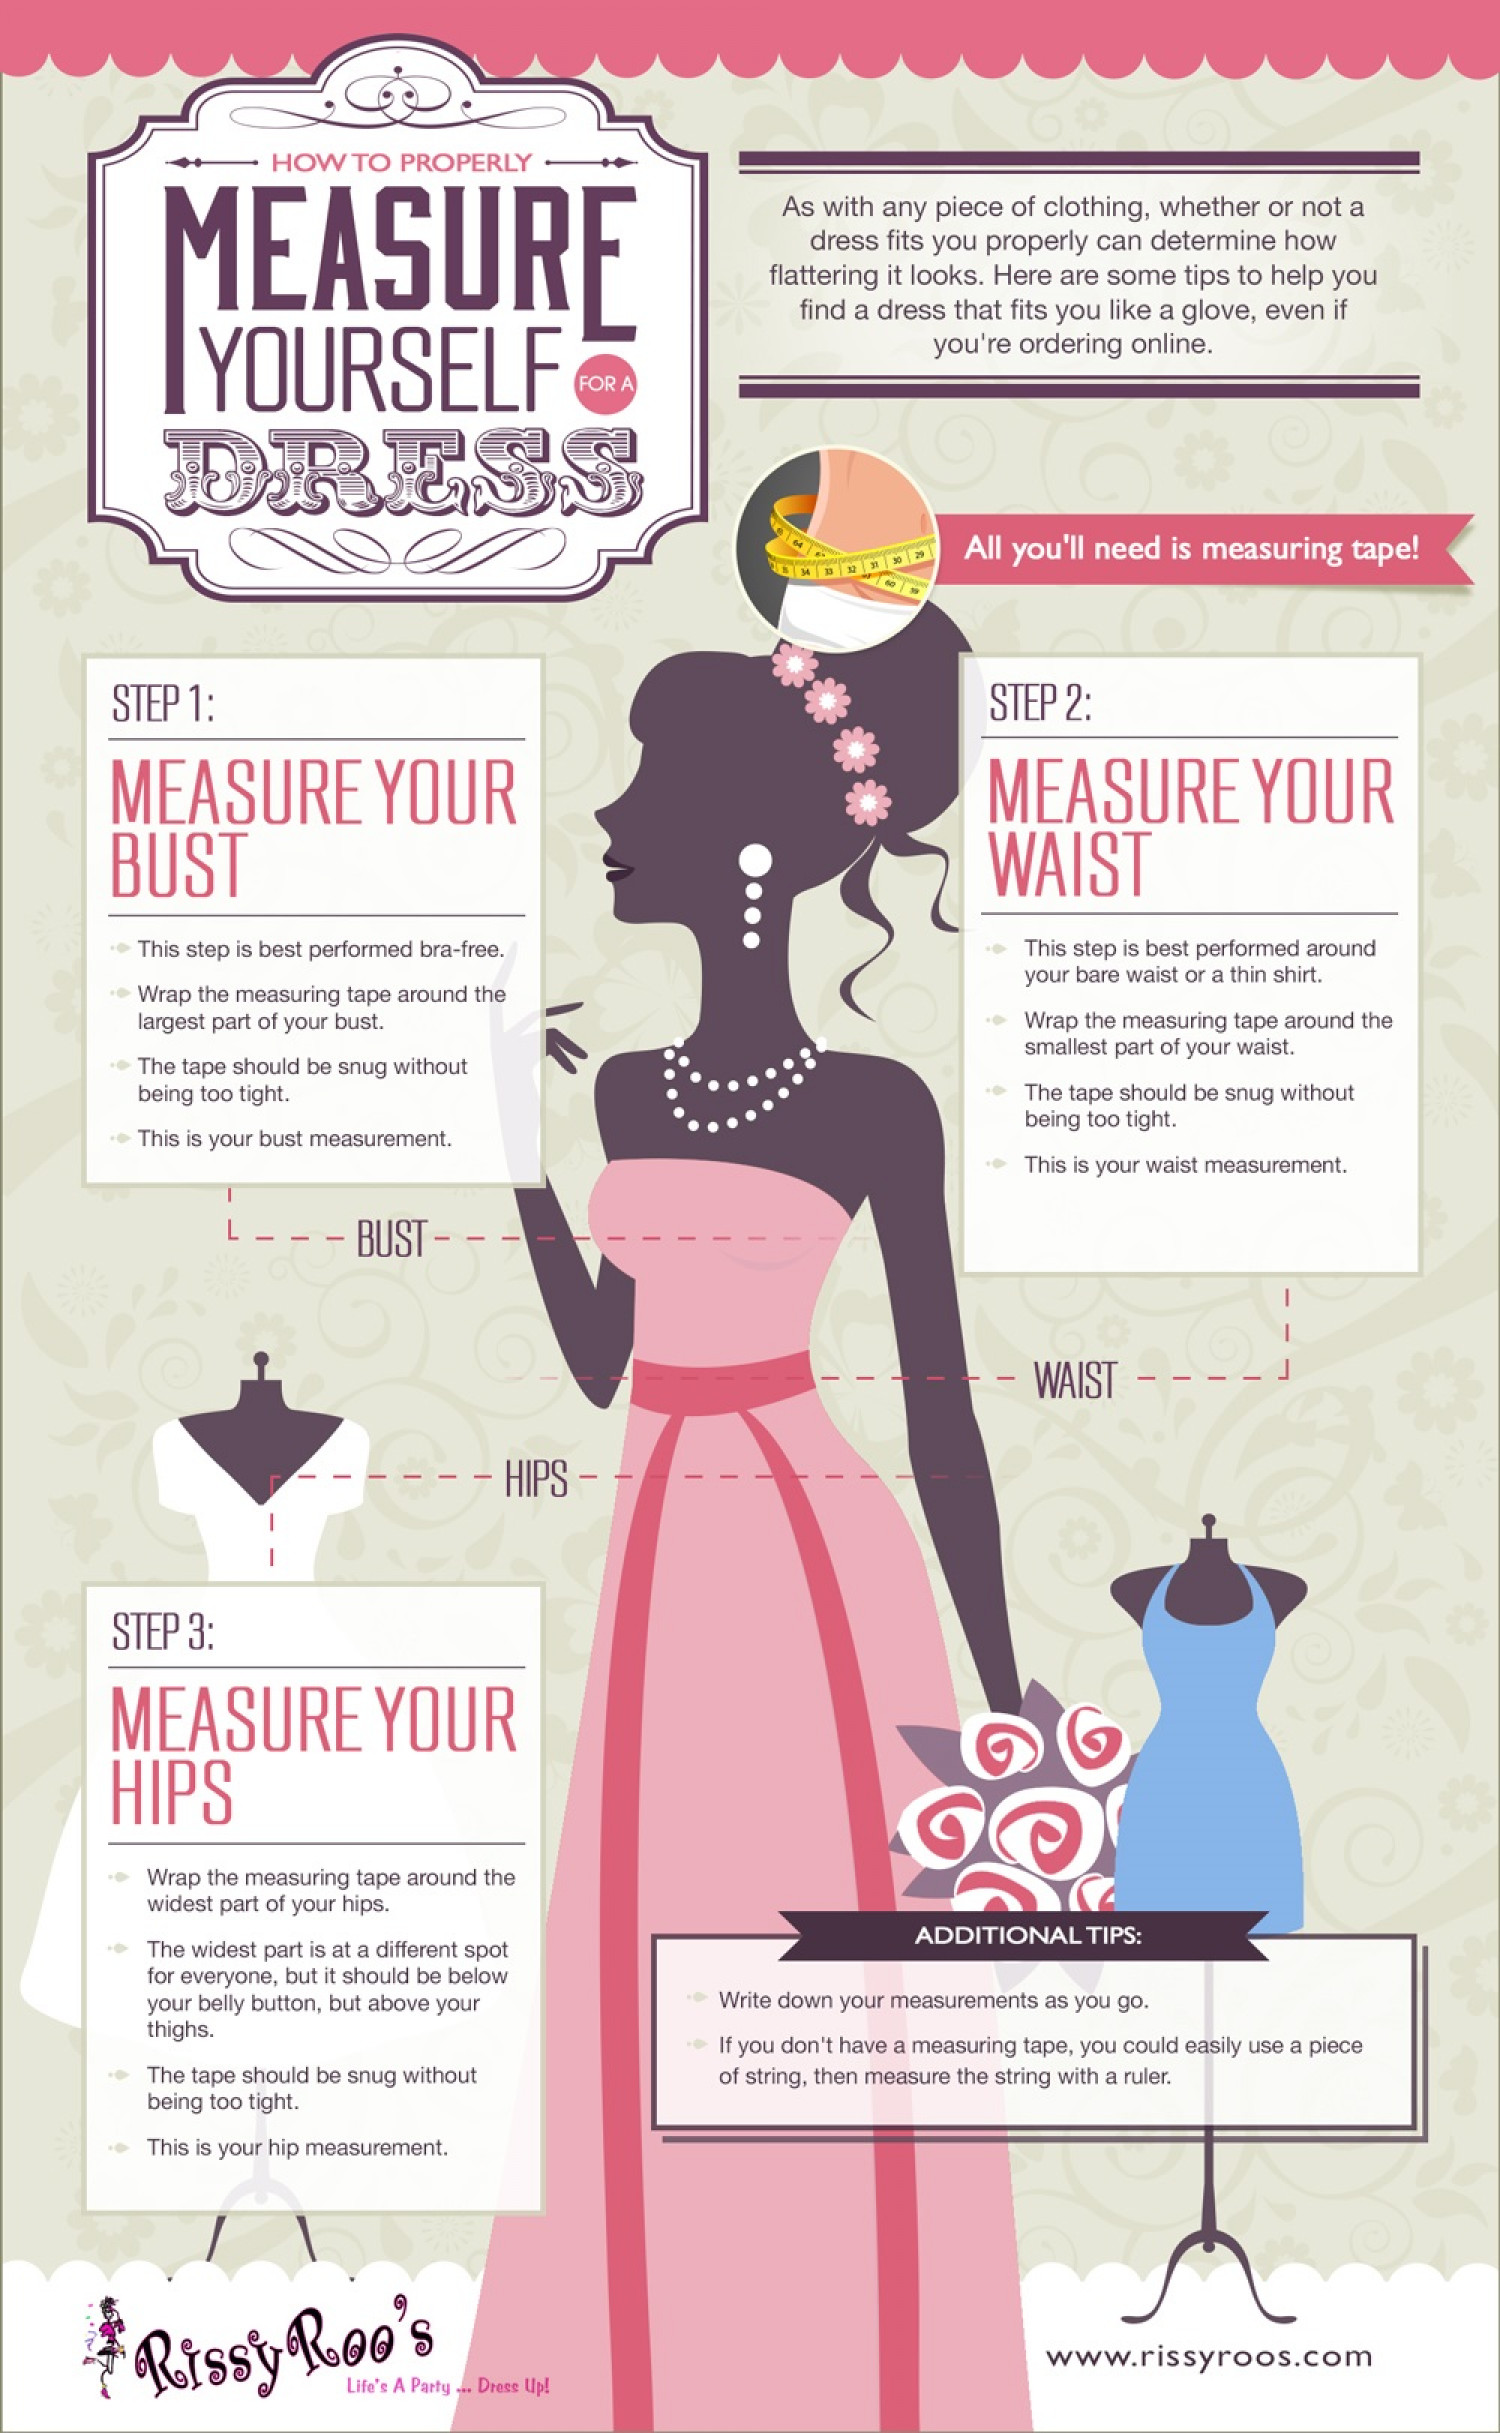 How To Properly Measure Yourself For A Dress Visually